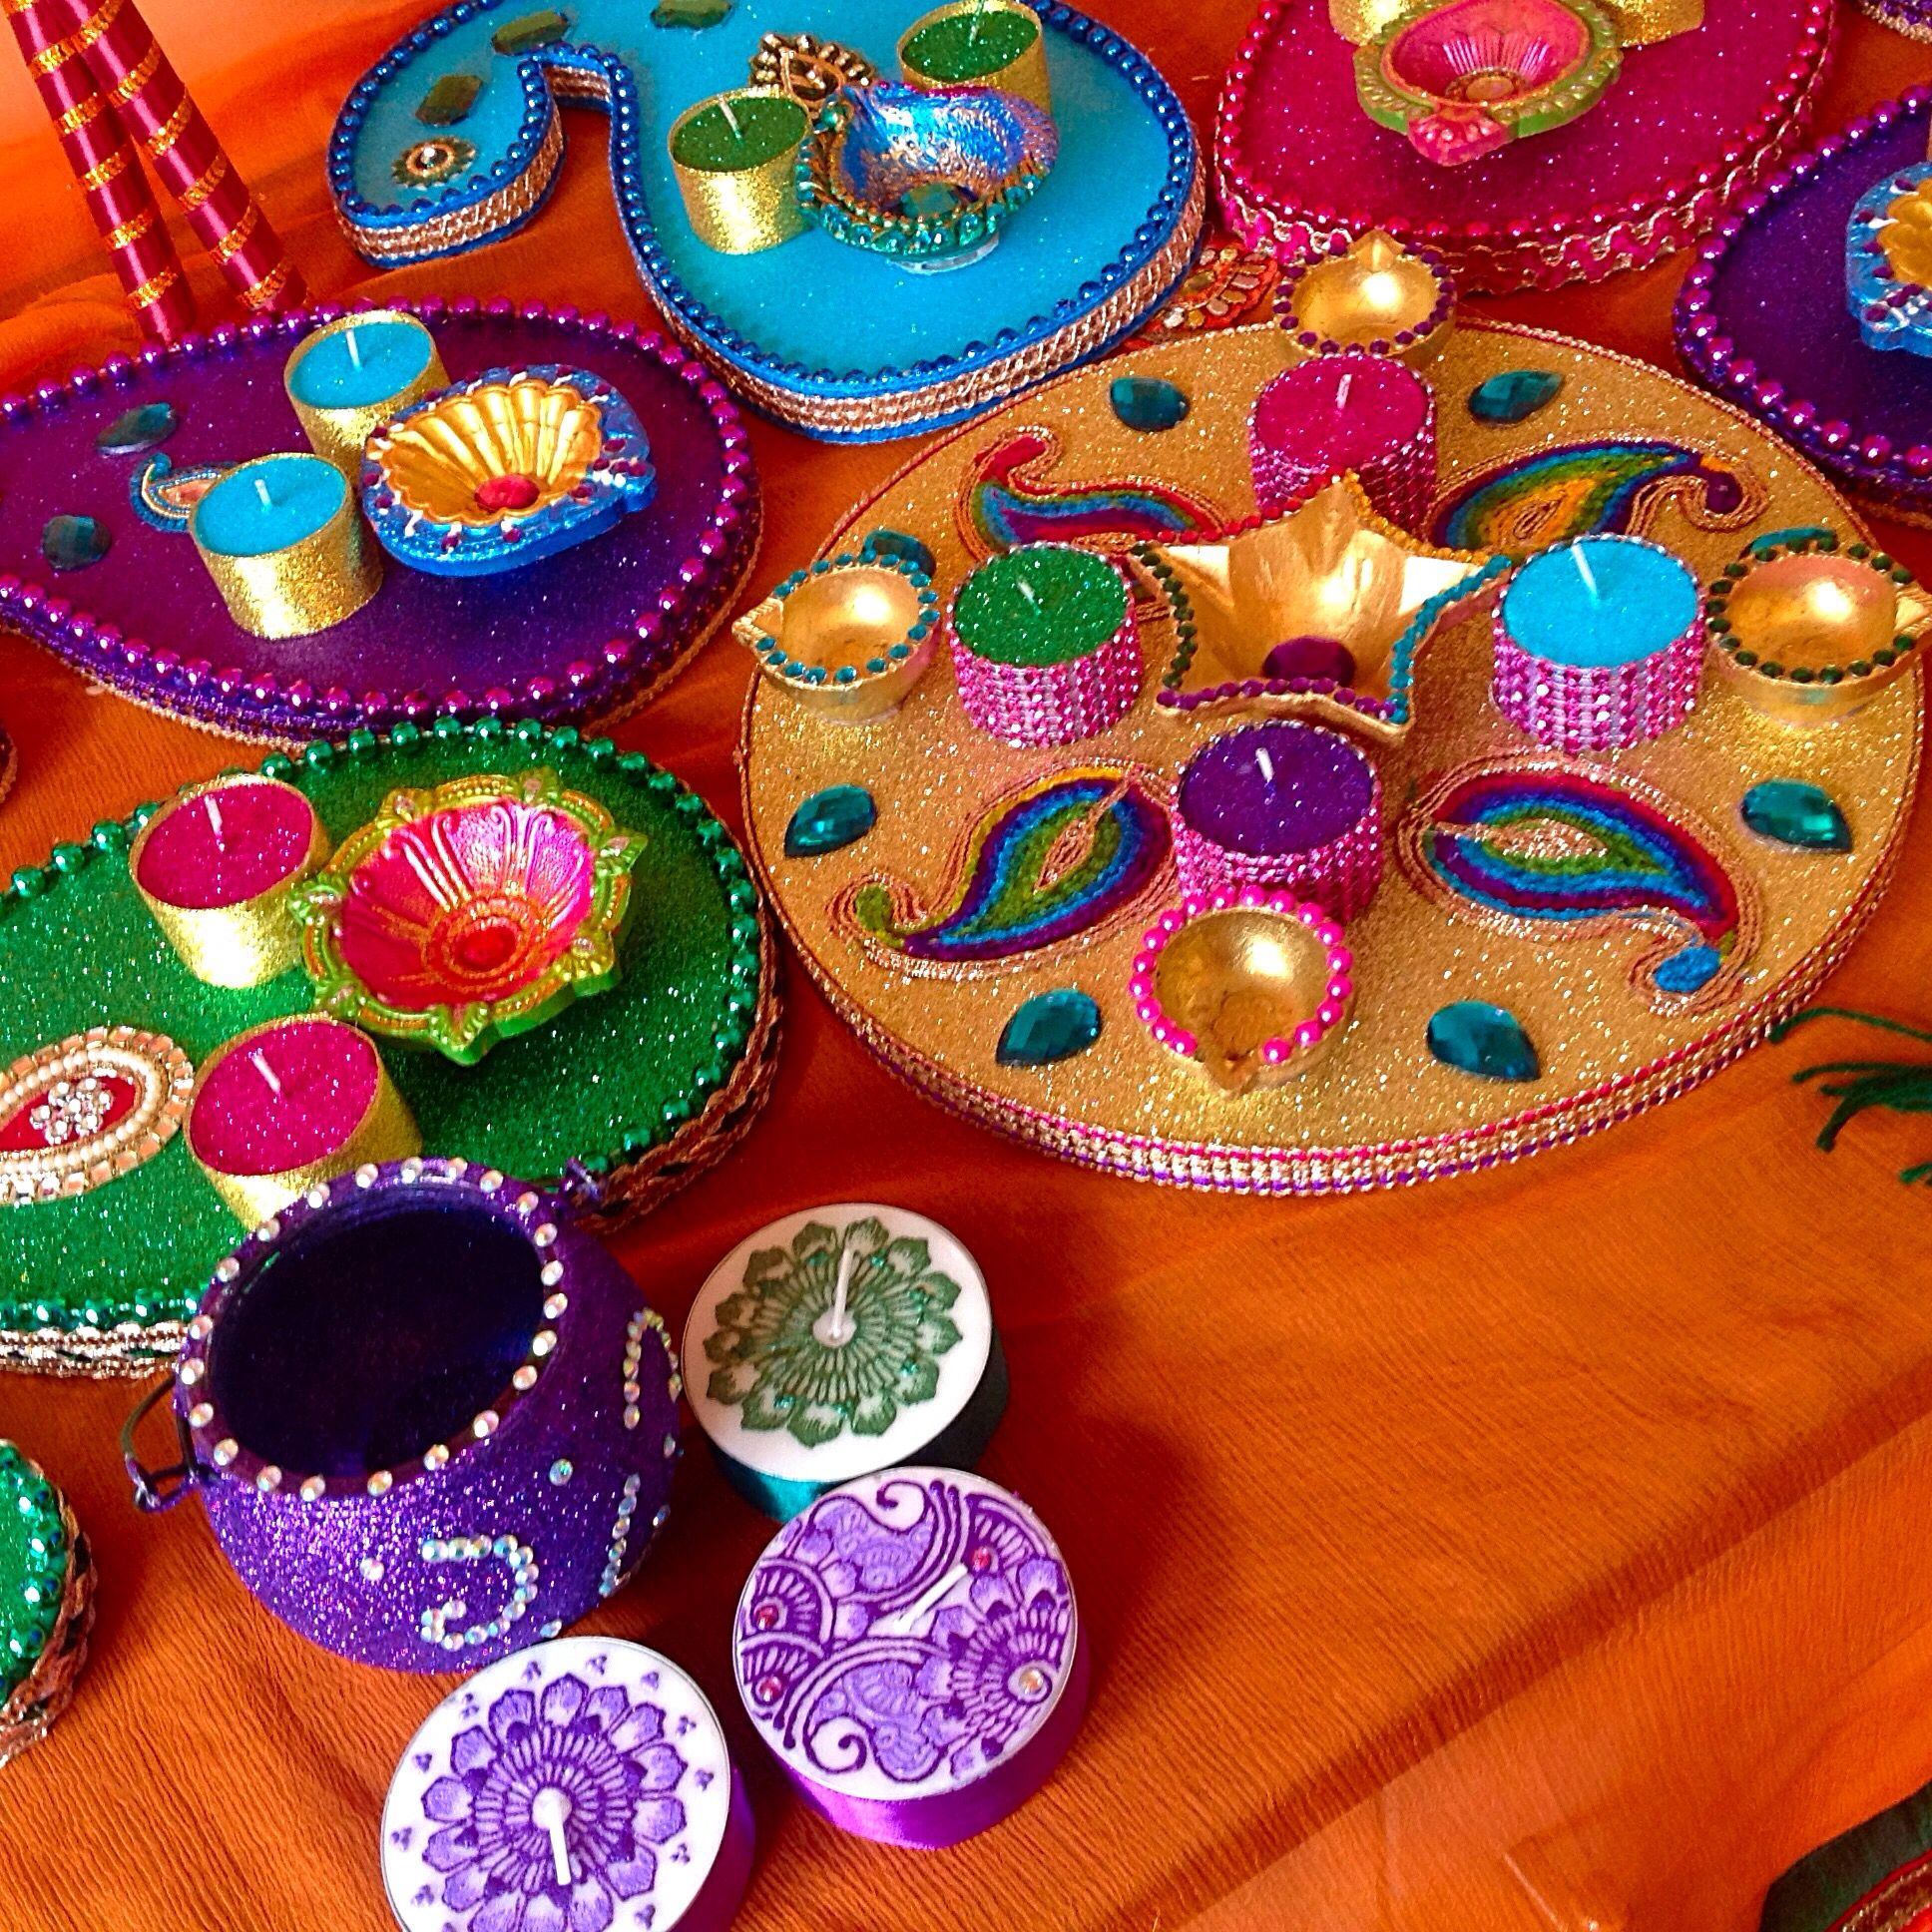 Mehndi Decoration Simple : Mehndi plates by lesley rizvi at trays for fun see